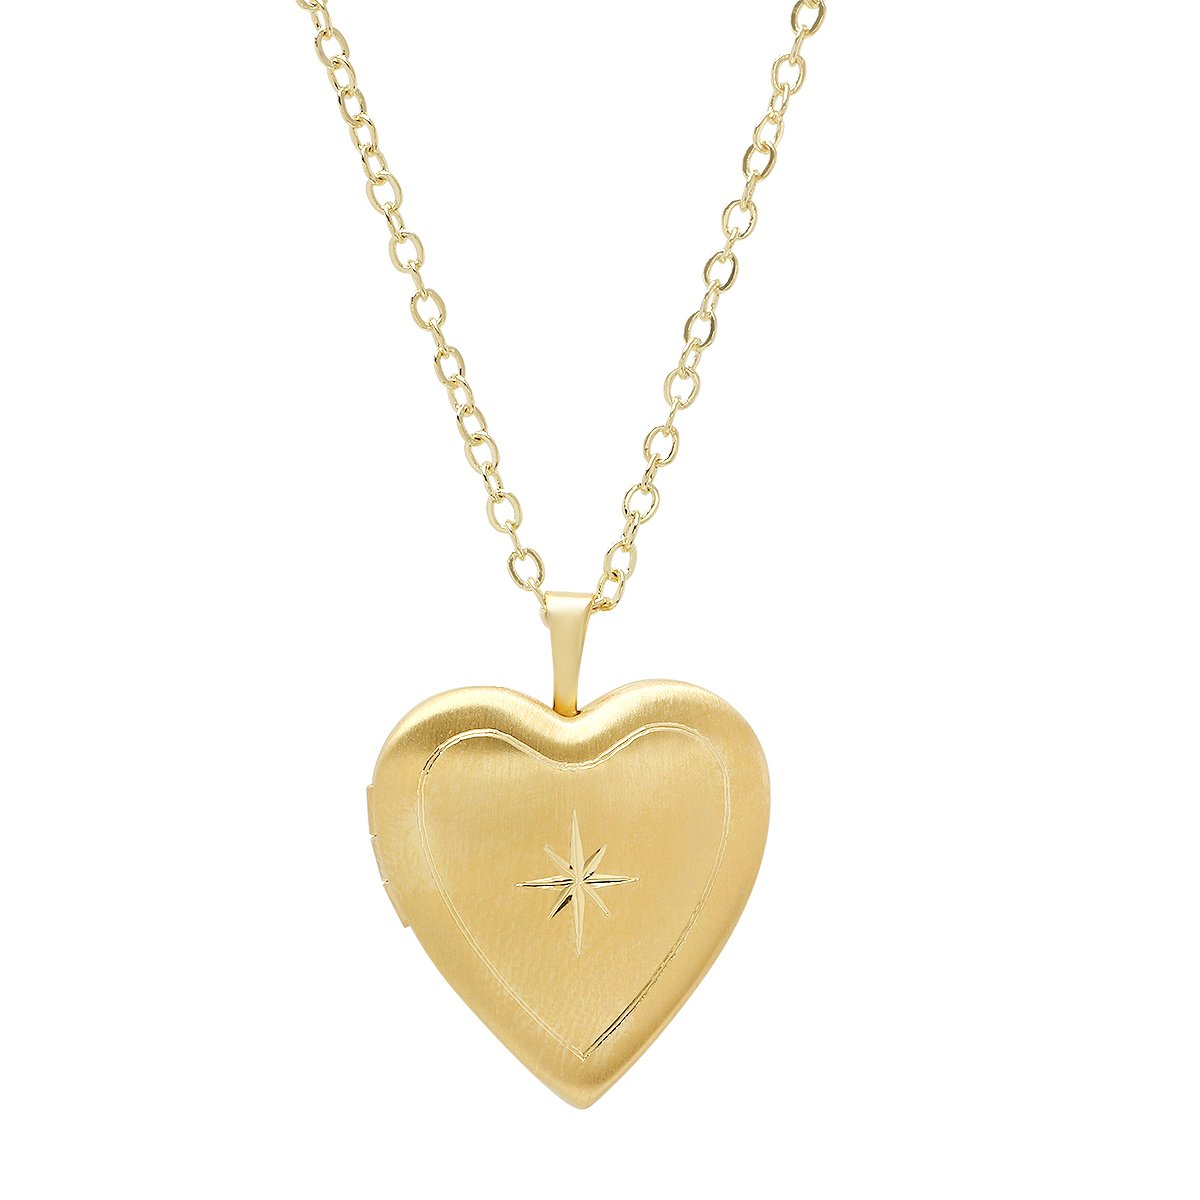 Pori Jewelers 925 Sterling Silver Diamond Cut Star Heart Locket Necklace in Diamond Cut 18'' chain - Choose Your Color (Gold)